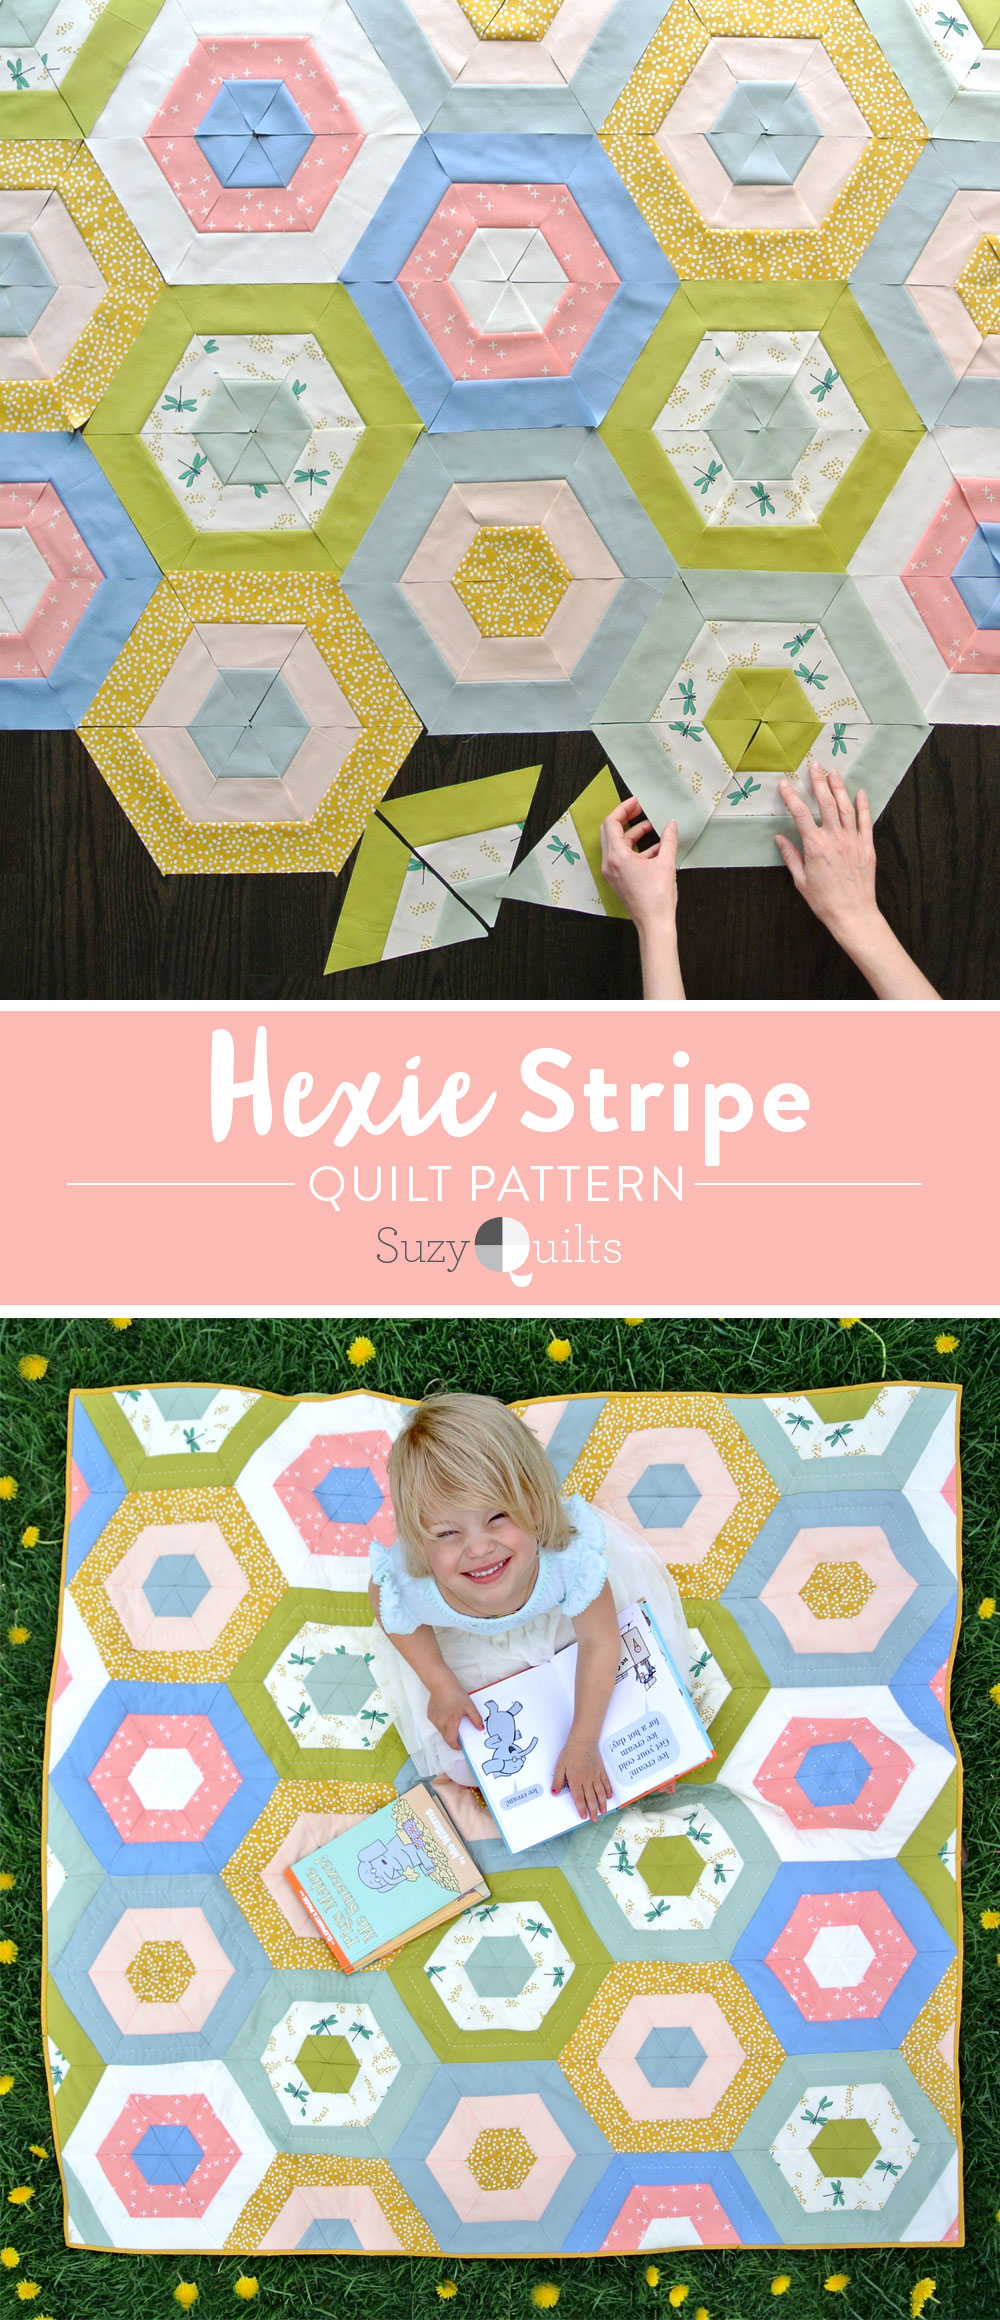 Hexie-Stripe-Suzy-Quilts